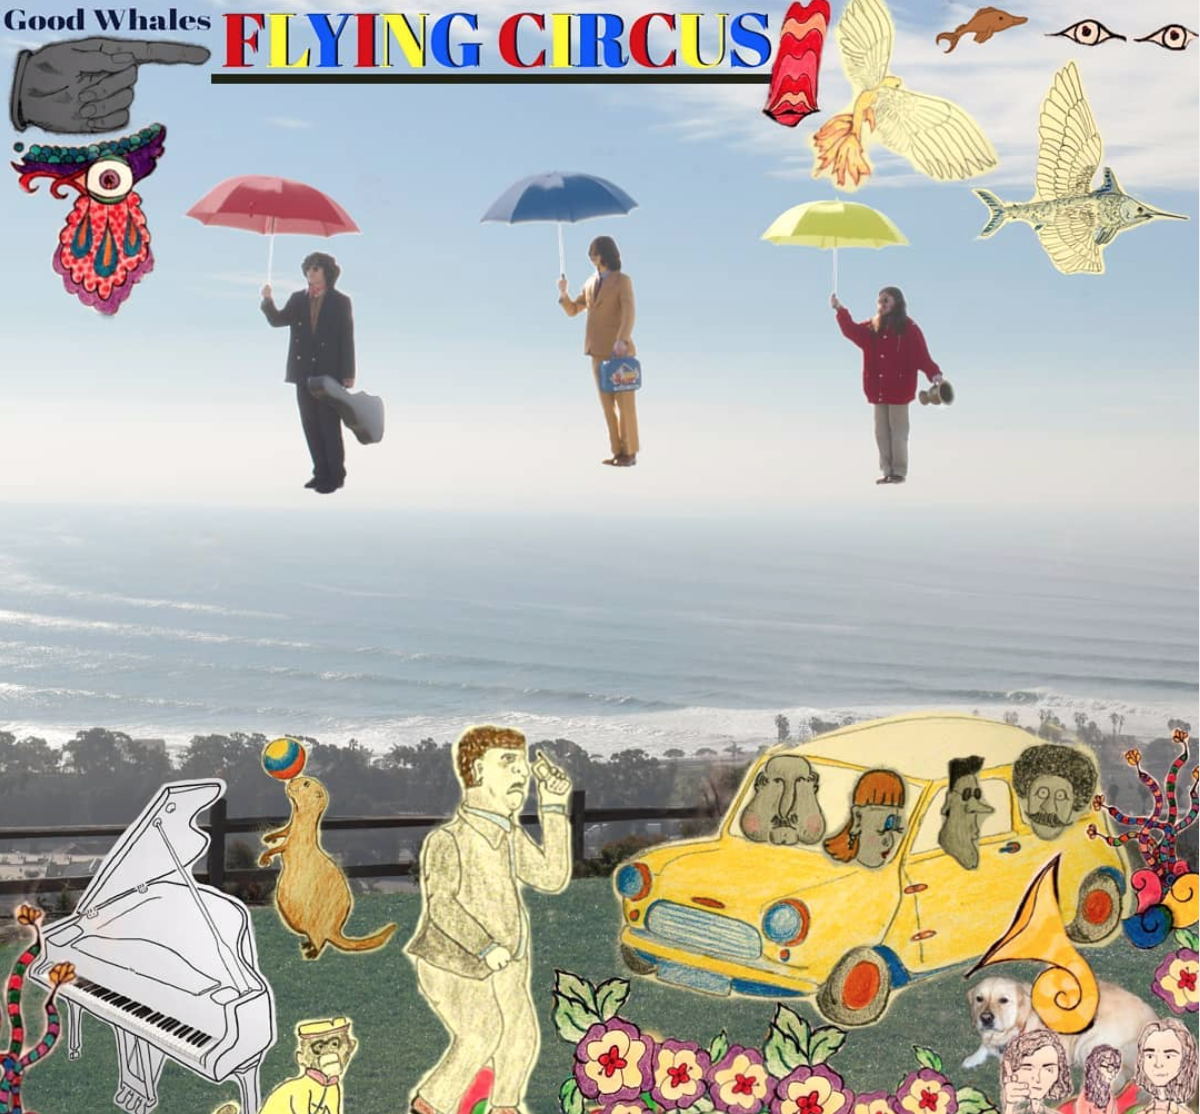 """Drop of the Week: """"Flying Circus"""" by Good Whales"""